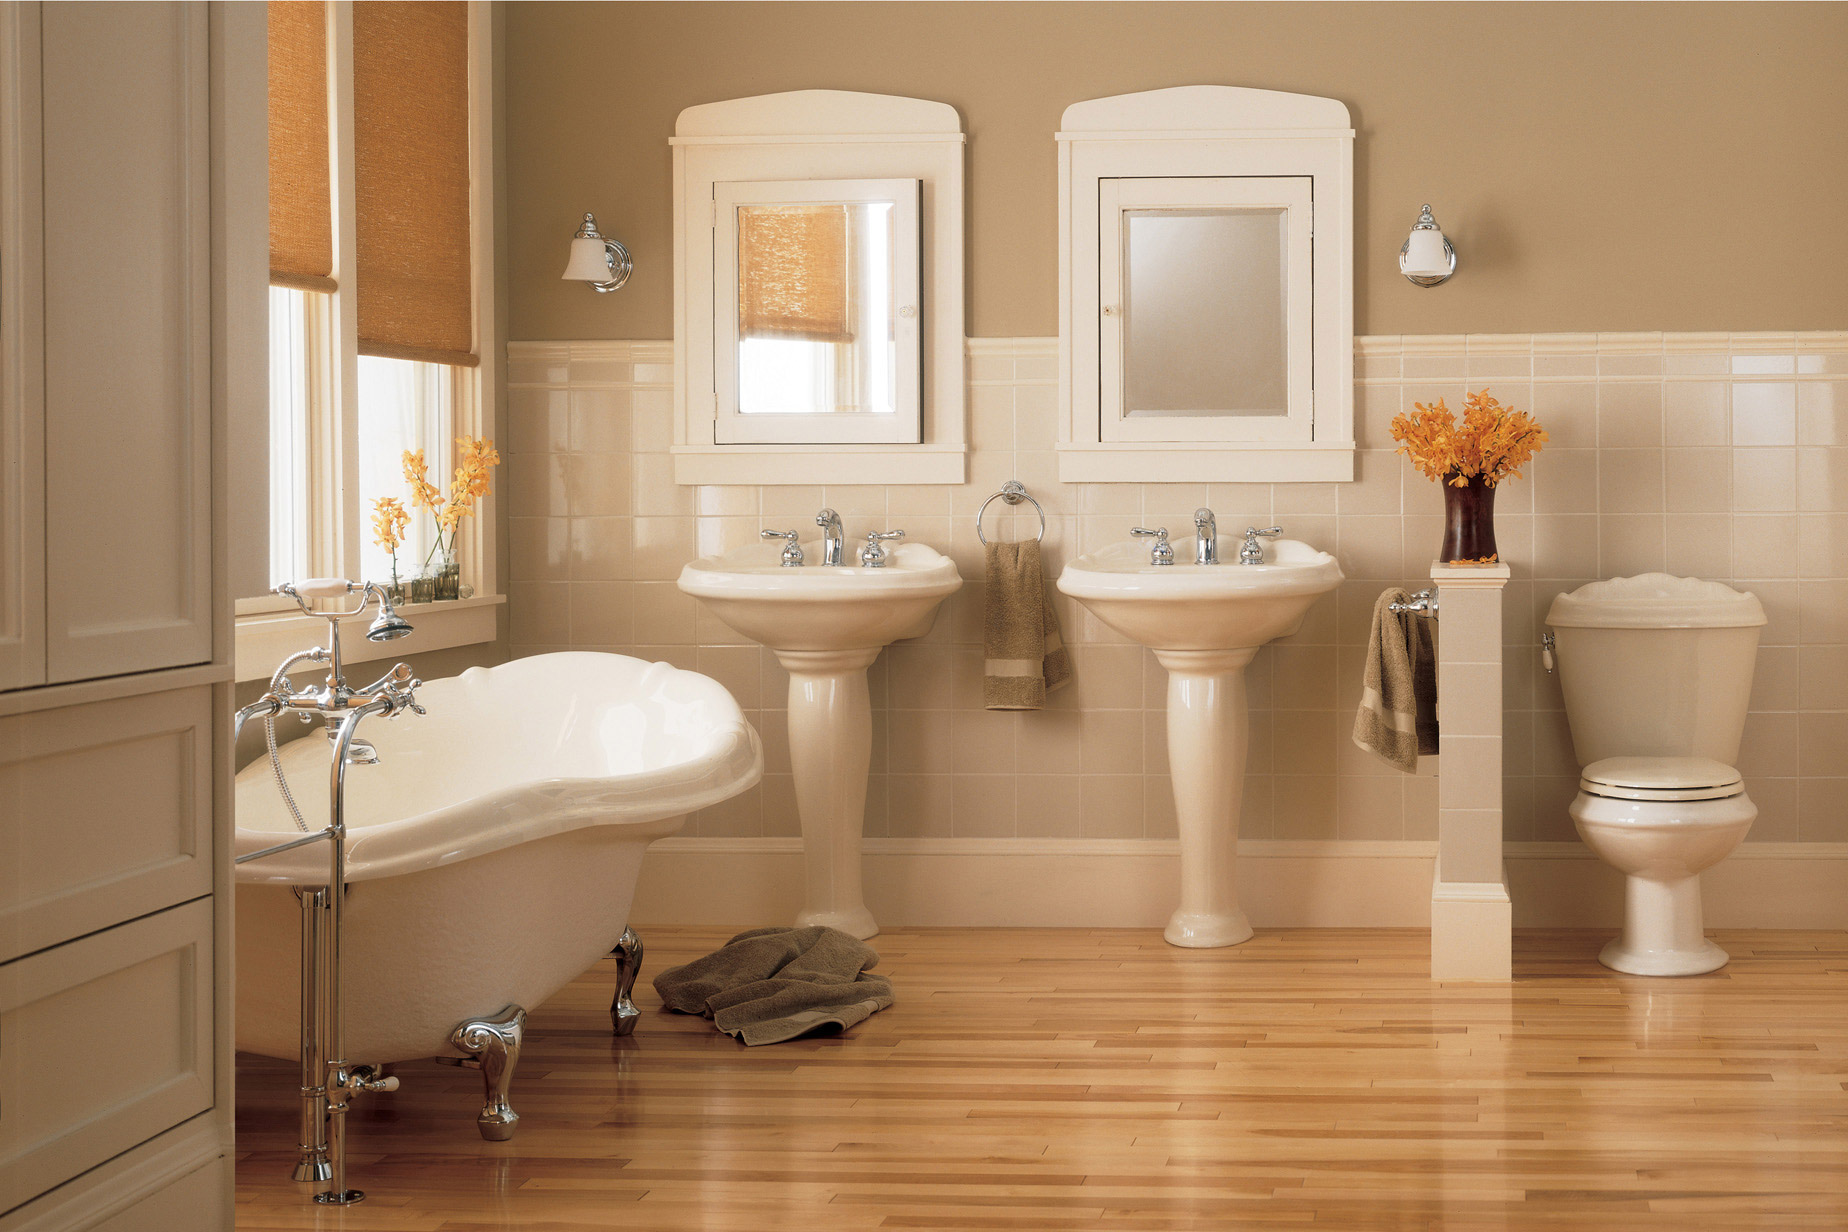 American Standard Bathroom